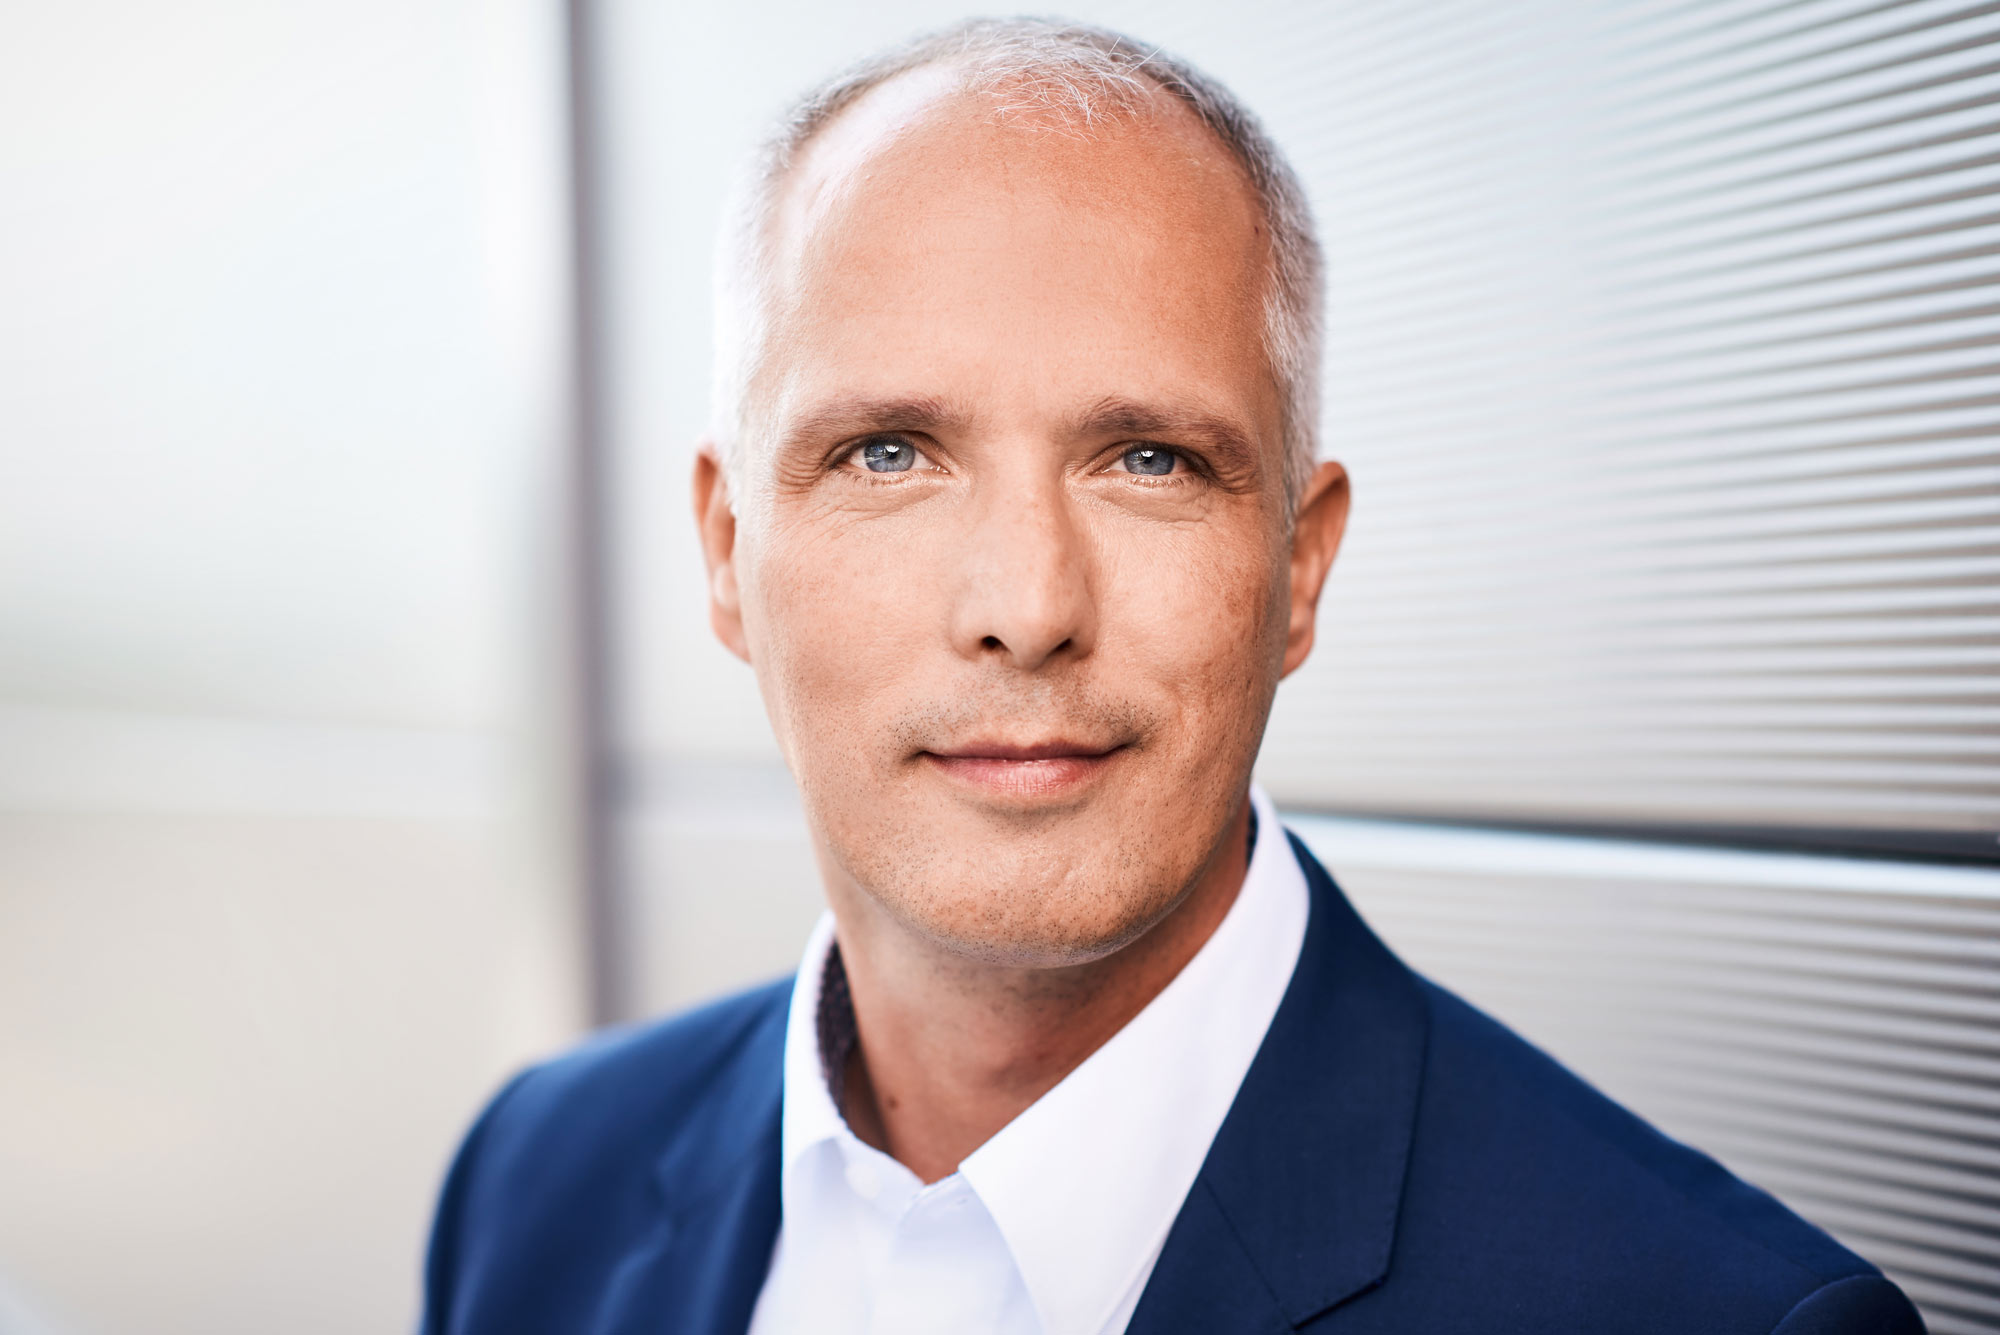 Sales Manager Rene Blanke